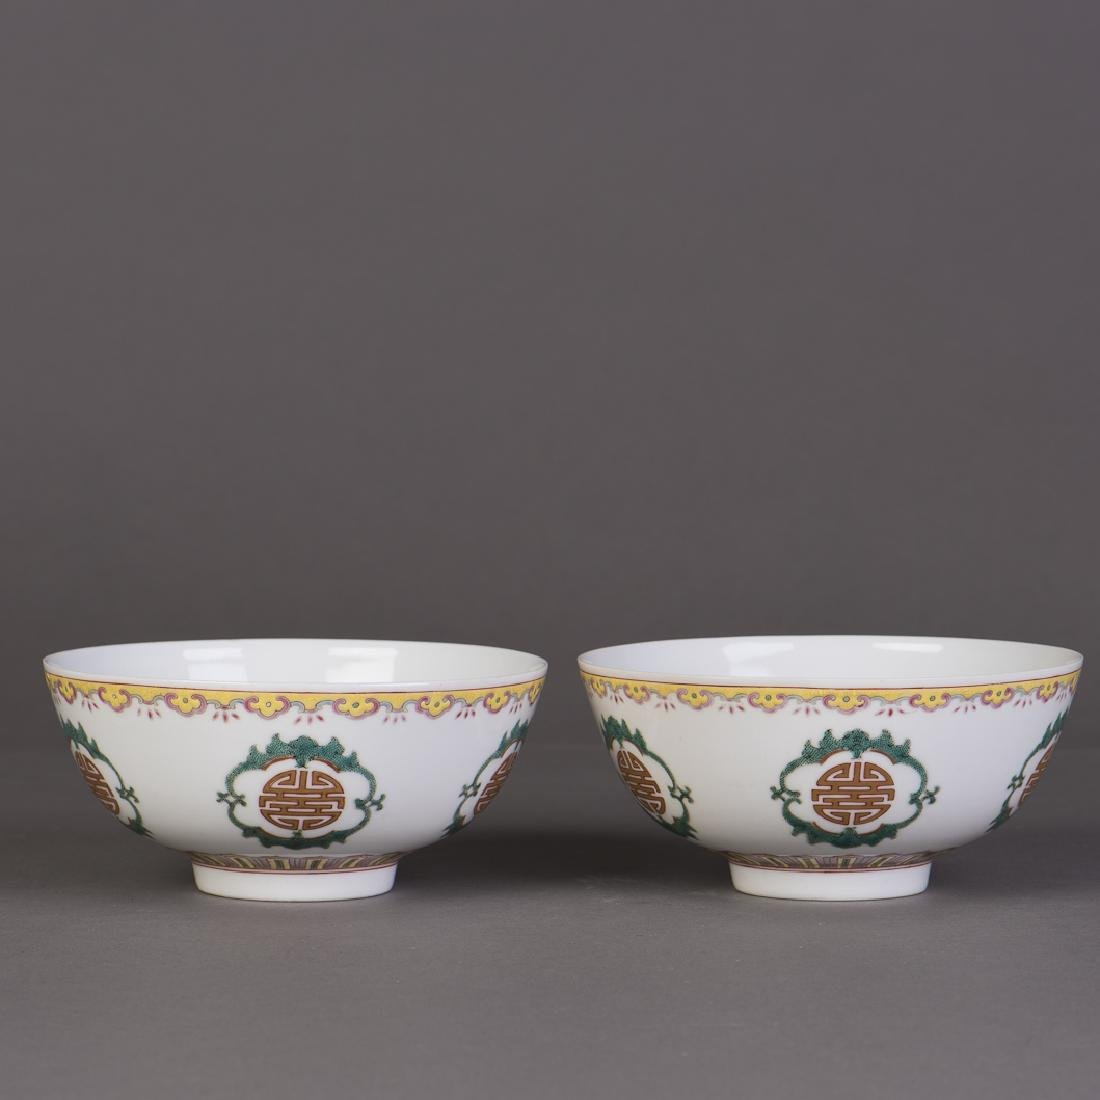 A PAIR OF FAMILLE ROSE WUSHOU PORCELAIN BOWLS